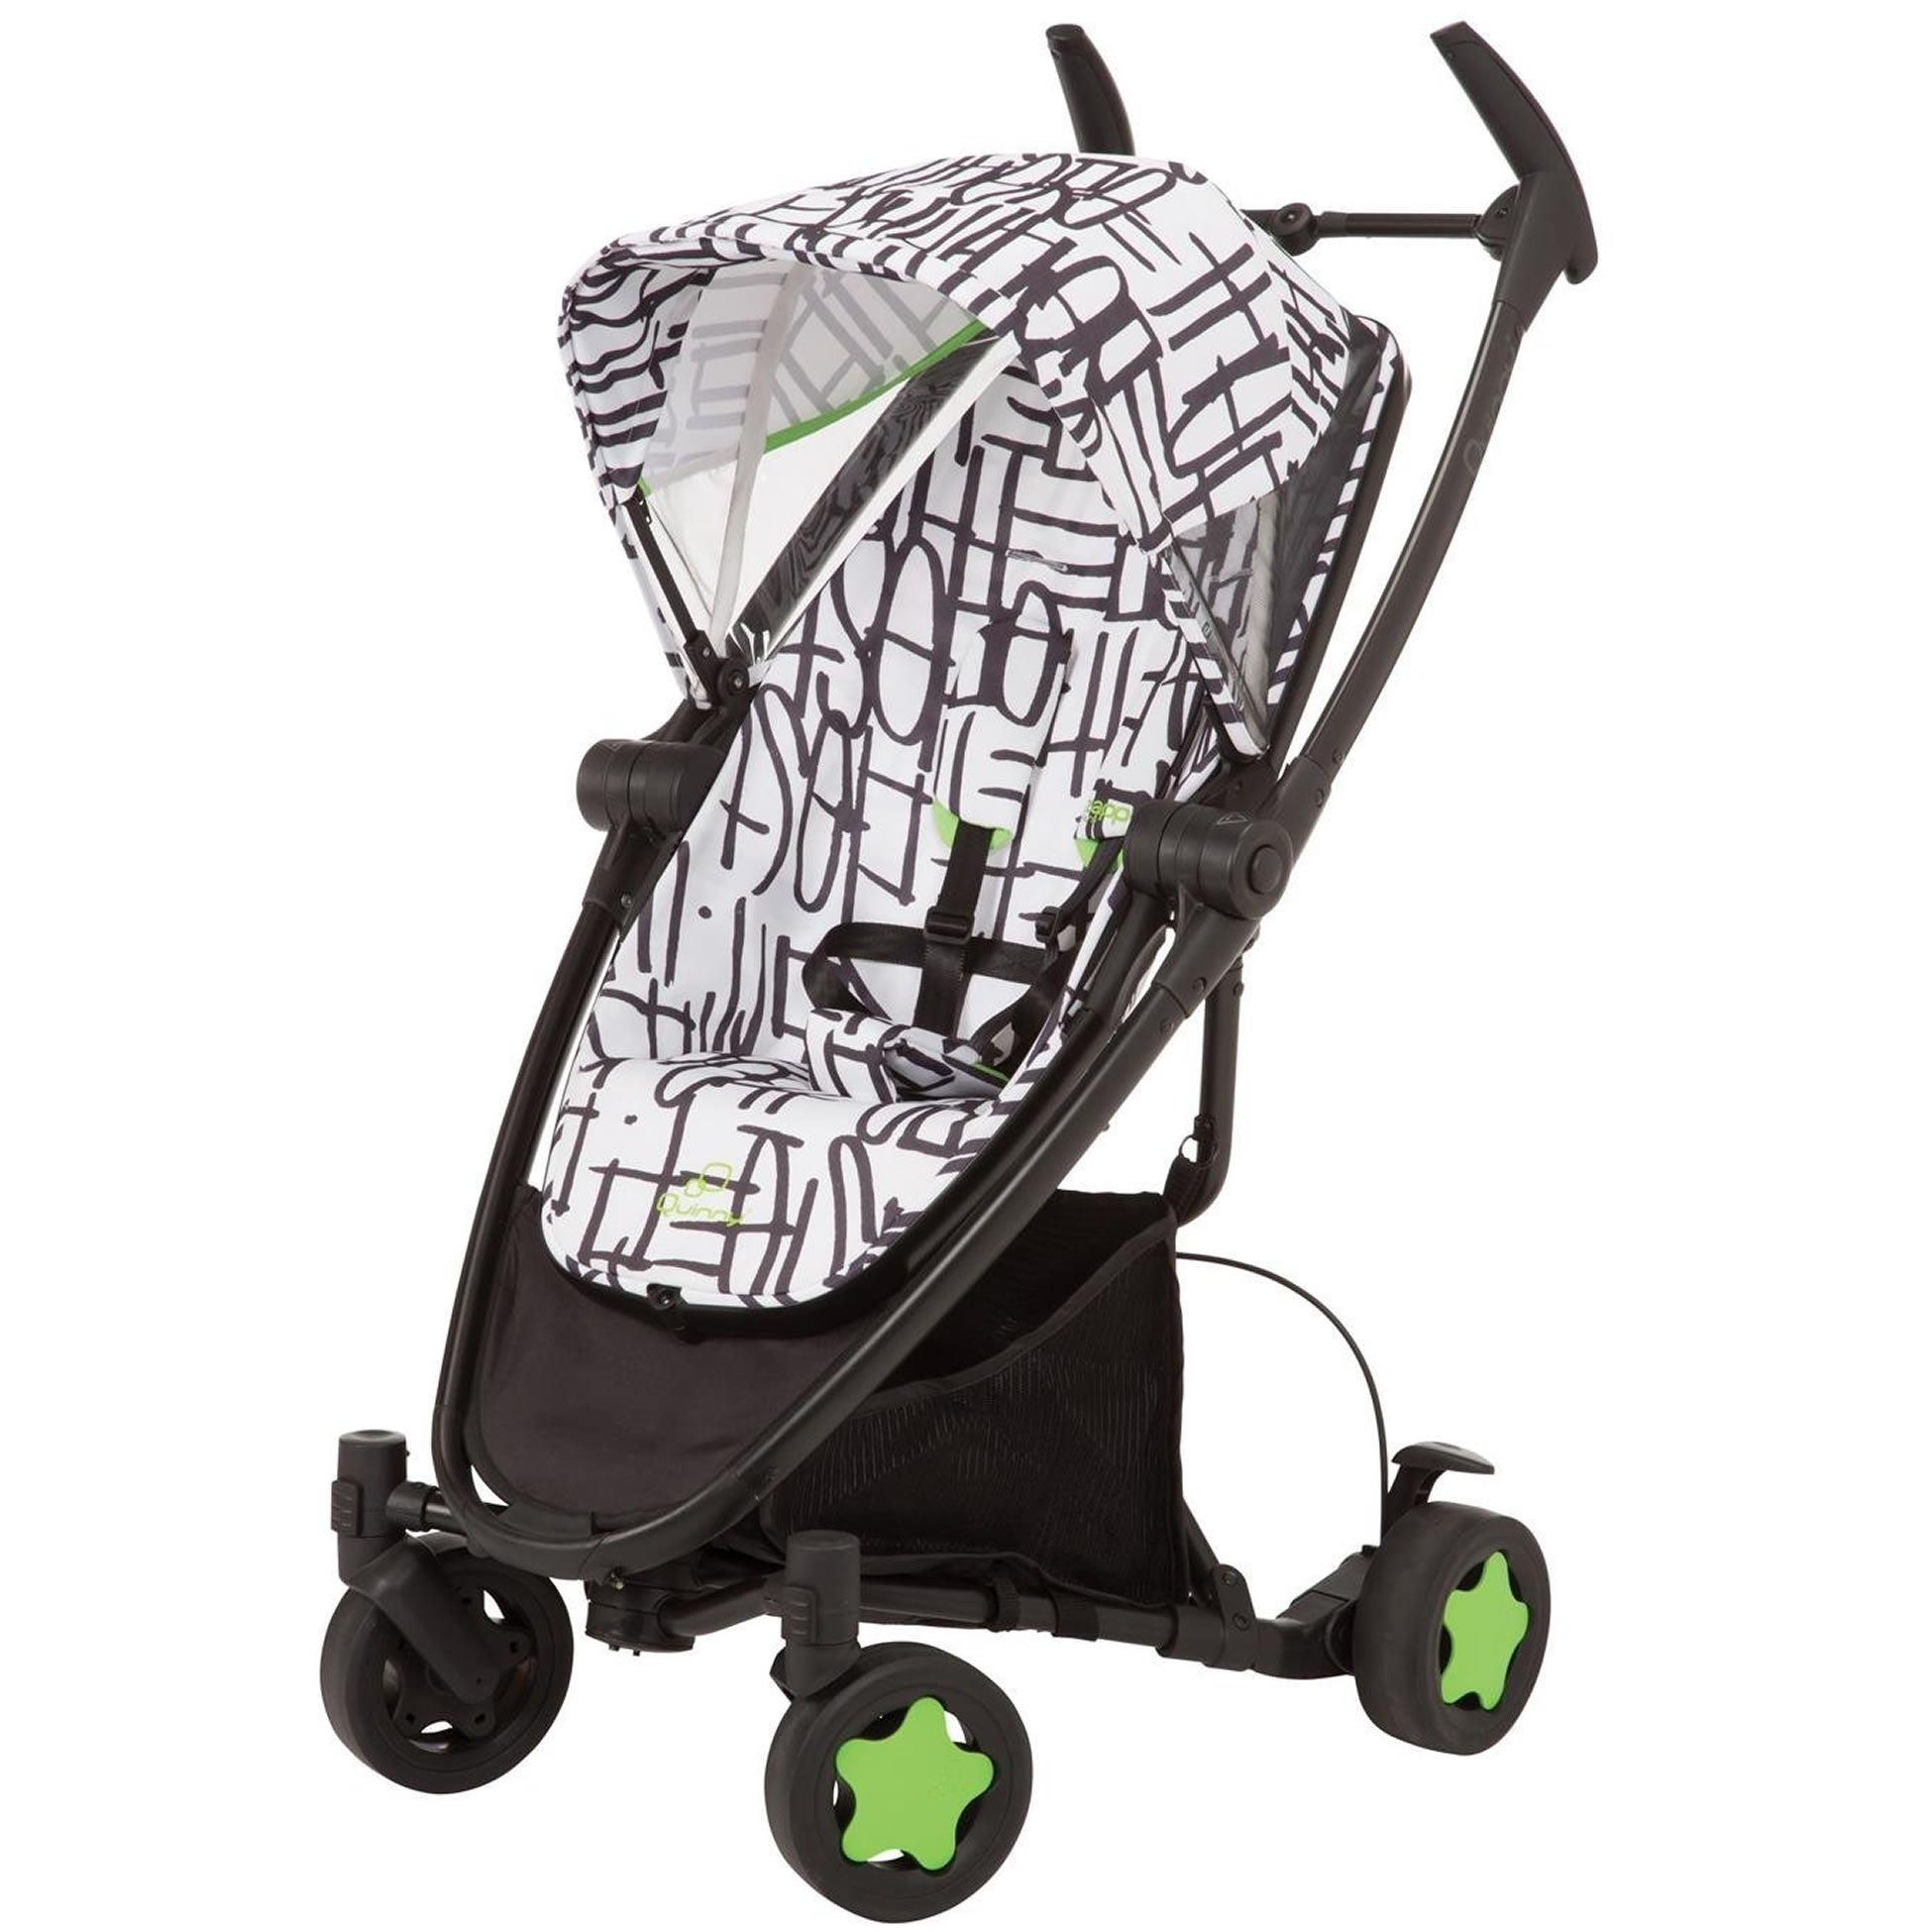 Quinny zapp xtra folding seat stroller special edition black with.